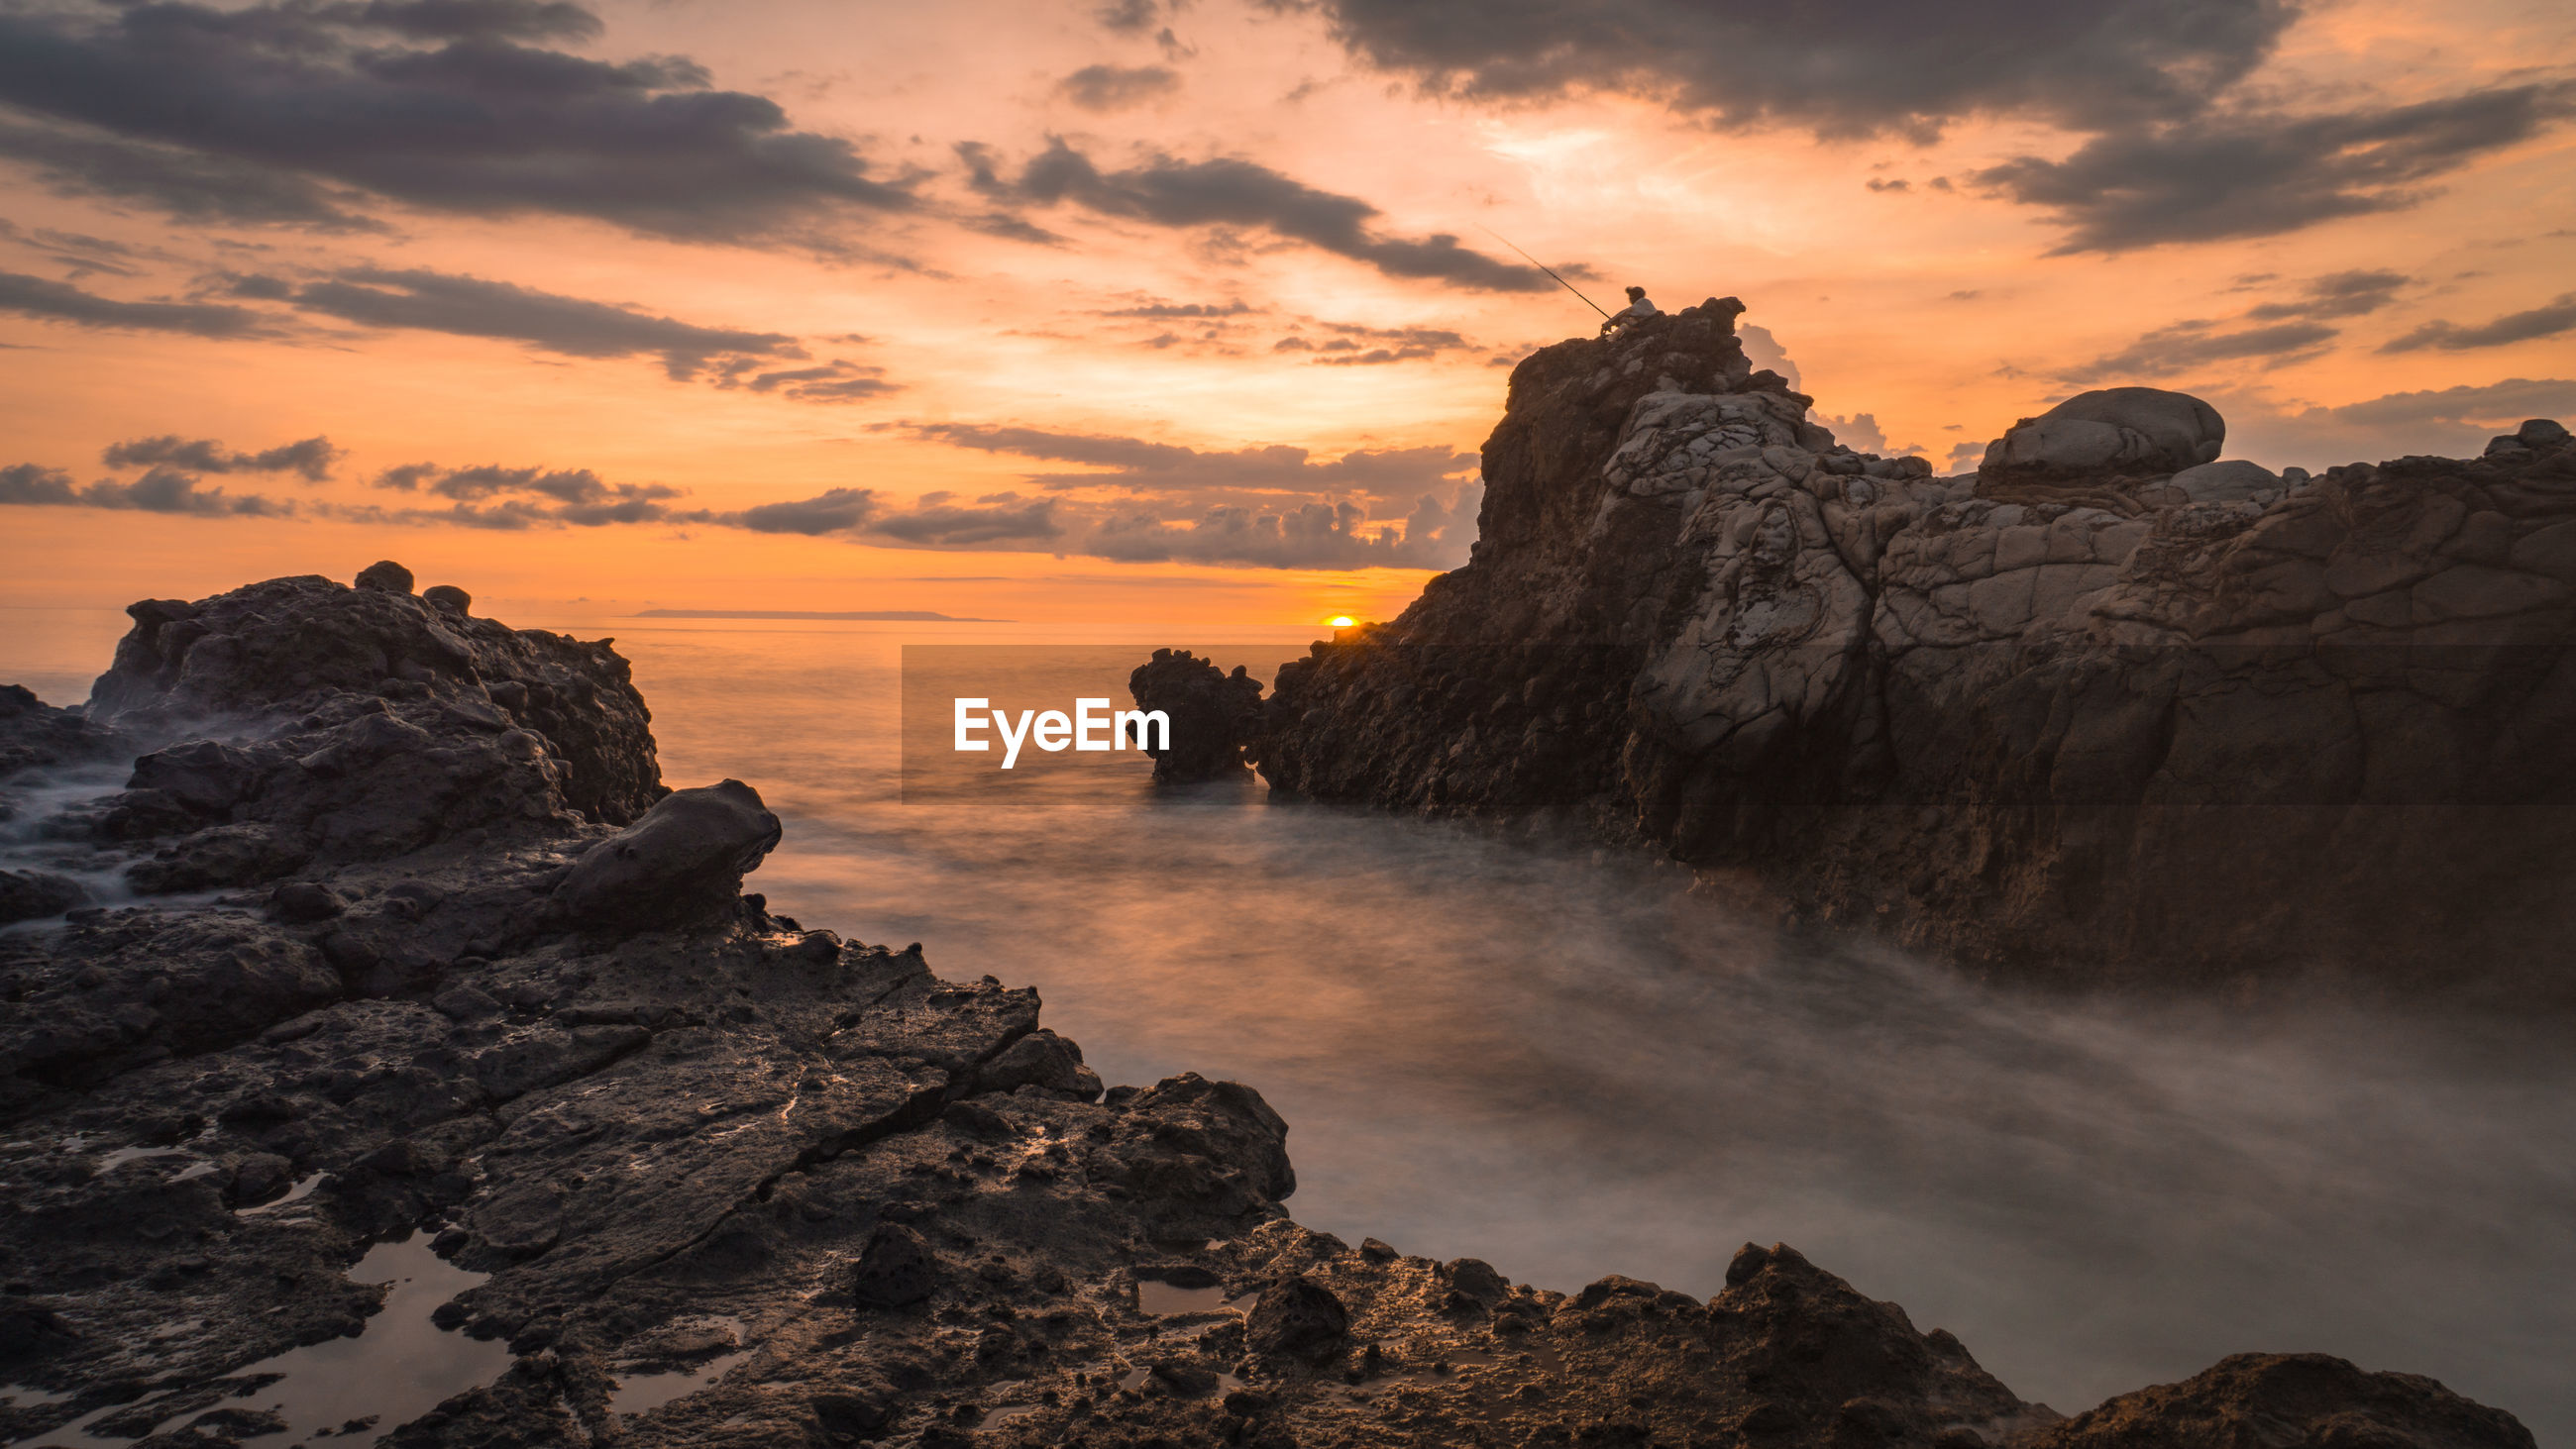 SCENIC VIEW OF ROCK FORMATION IN SEA AGAINST SKY DURING SUNSET